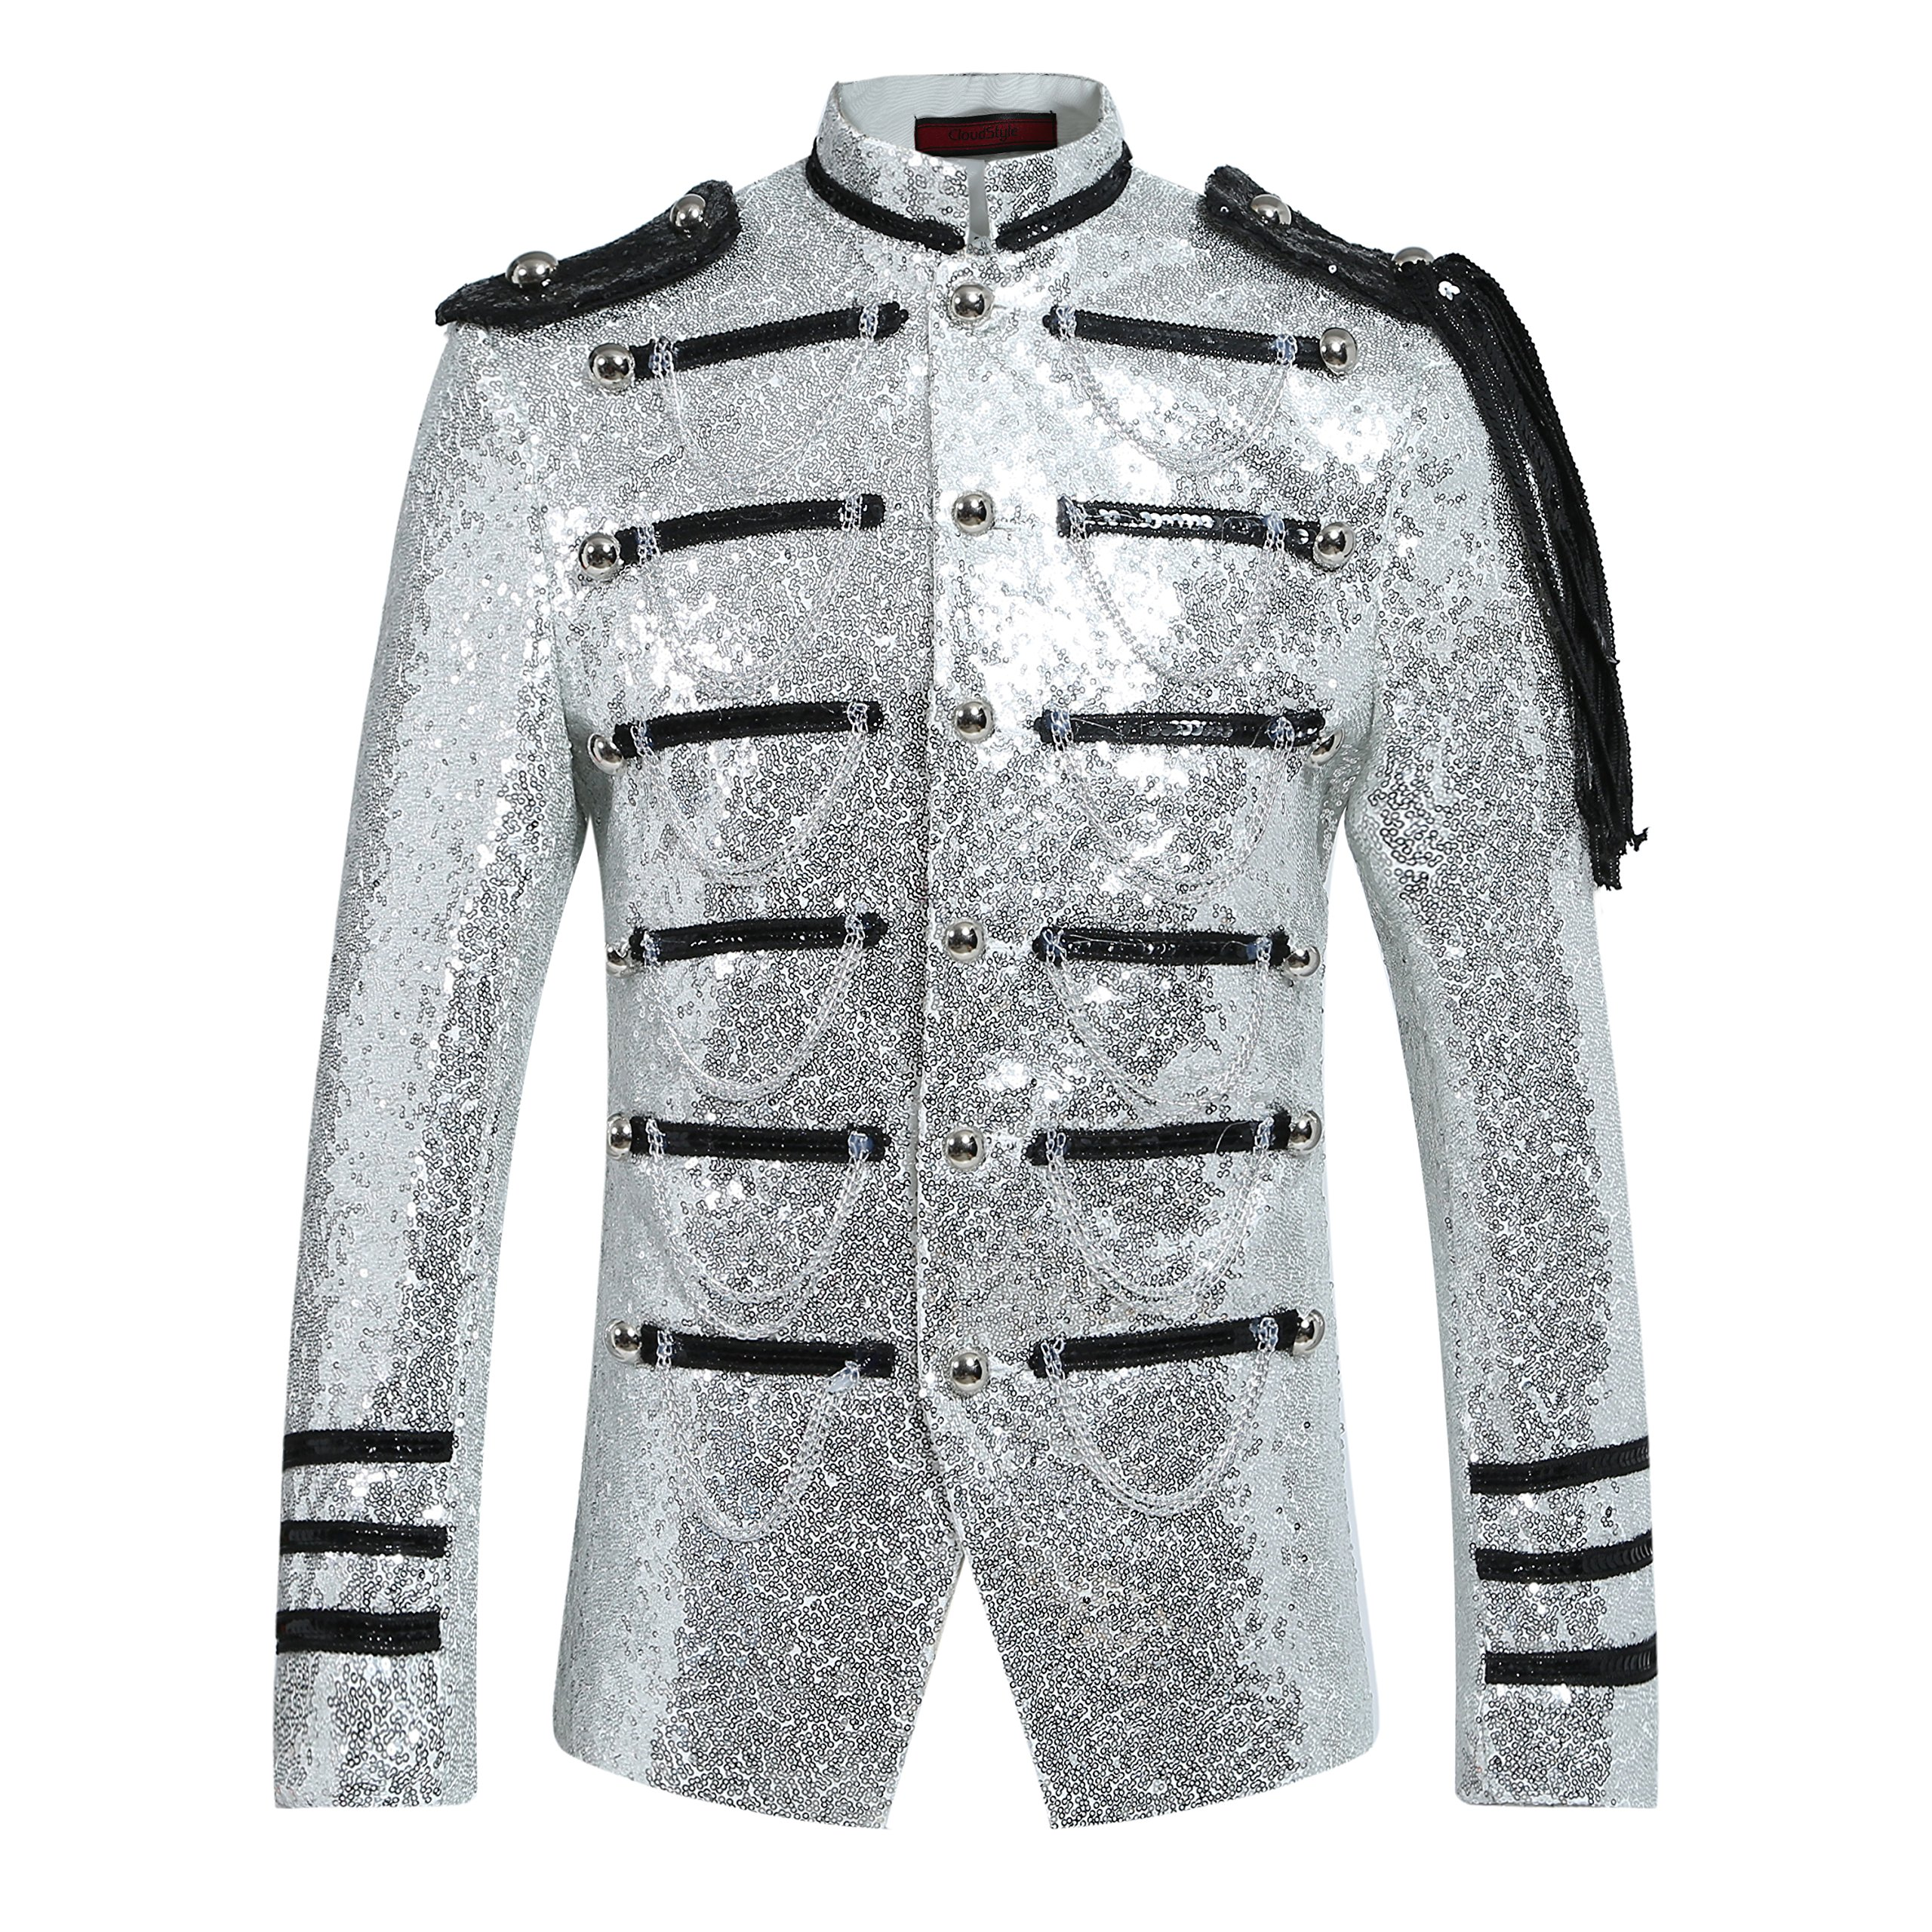 Mens 2-Piece Suit Fashion Sequin Party Prom Dinner Blazer Tuxedo Jacket Trousers,White,Large by Cloudstyle (Image #2)